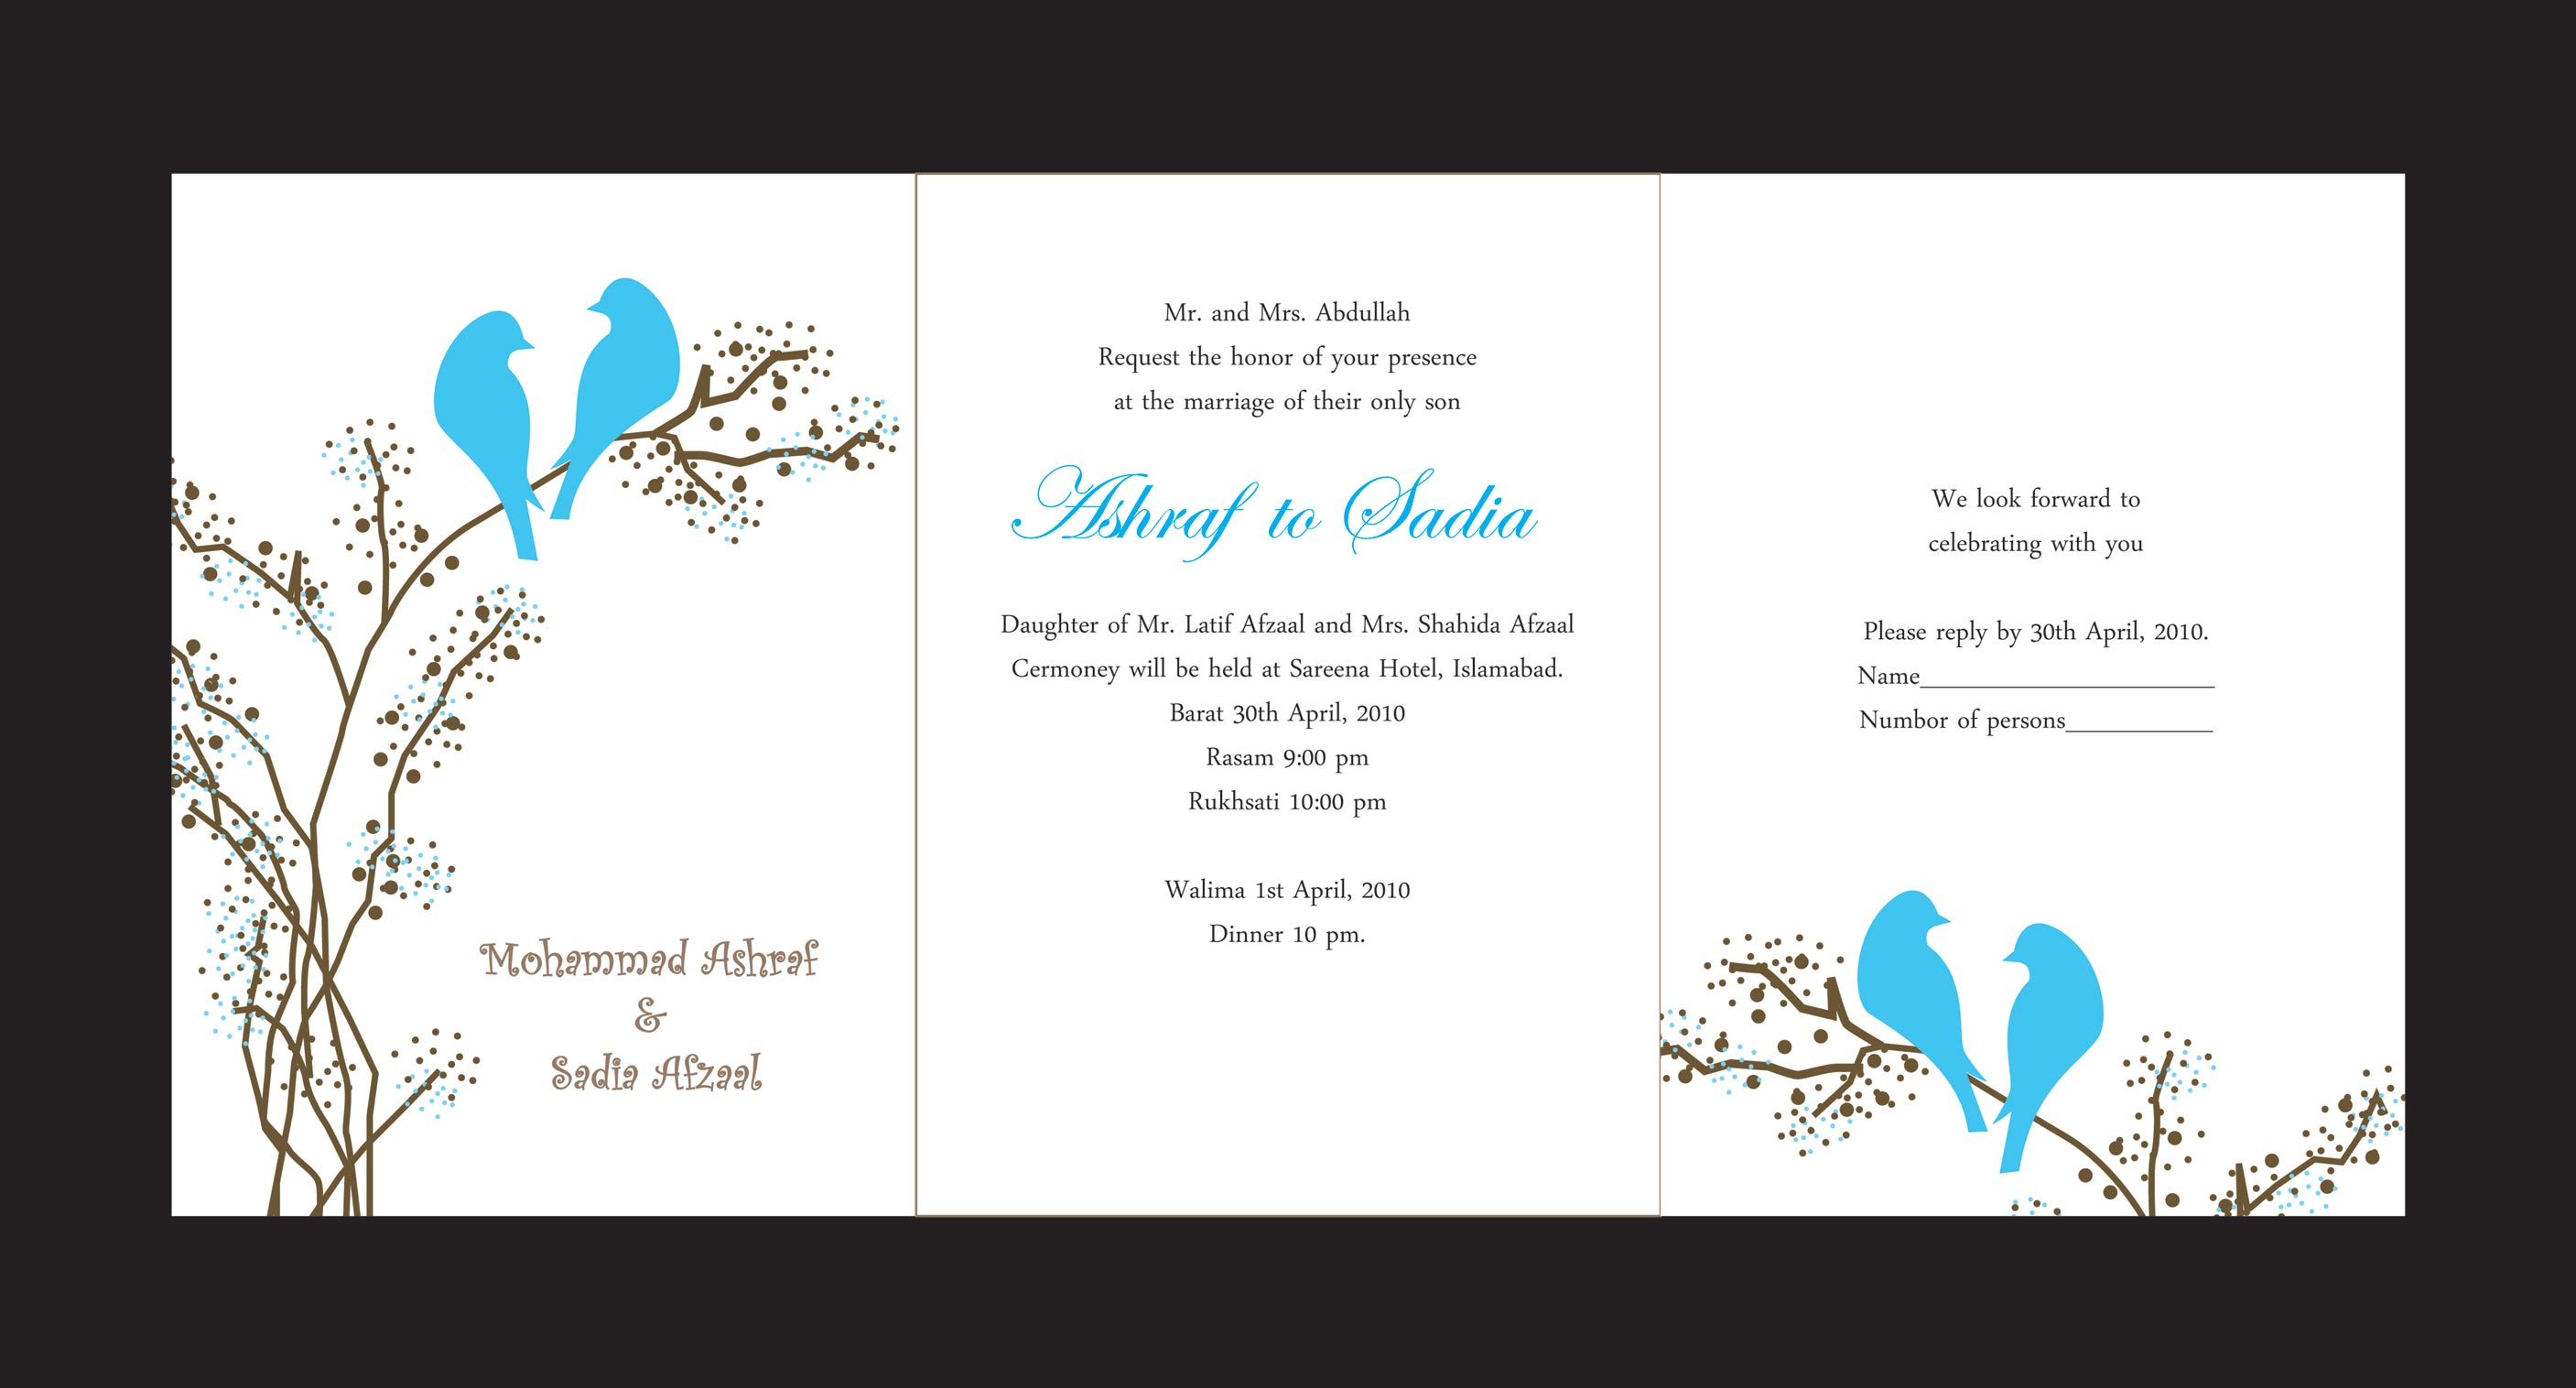 Wedding Cards by Ansar mahmood at Coroflot.